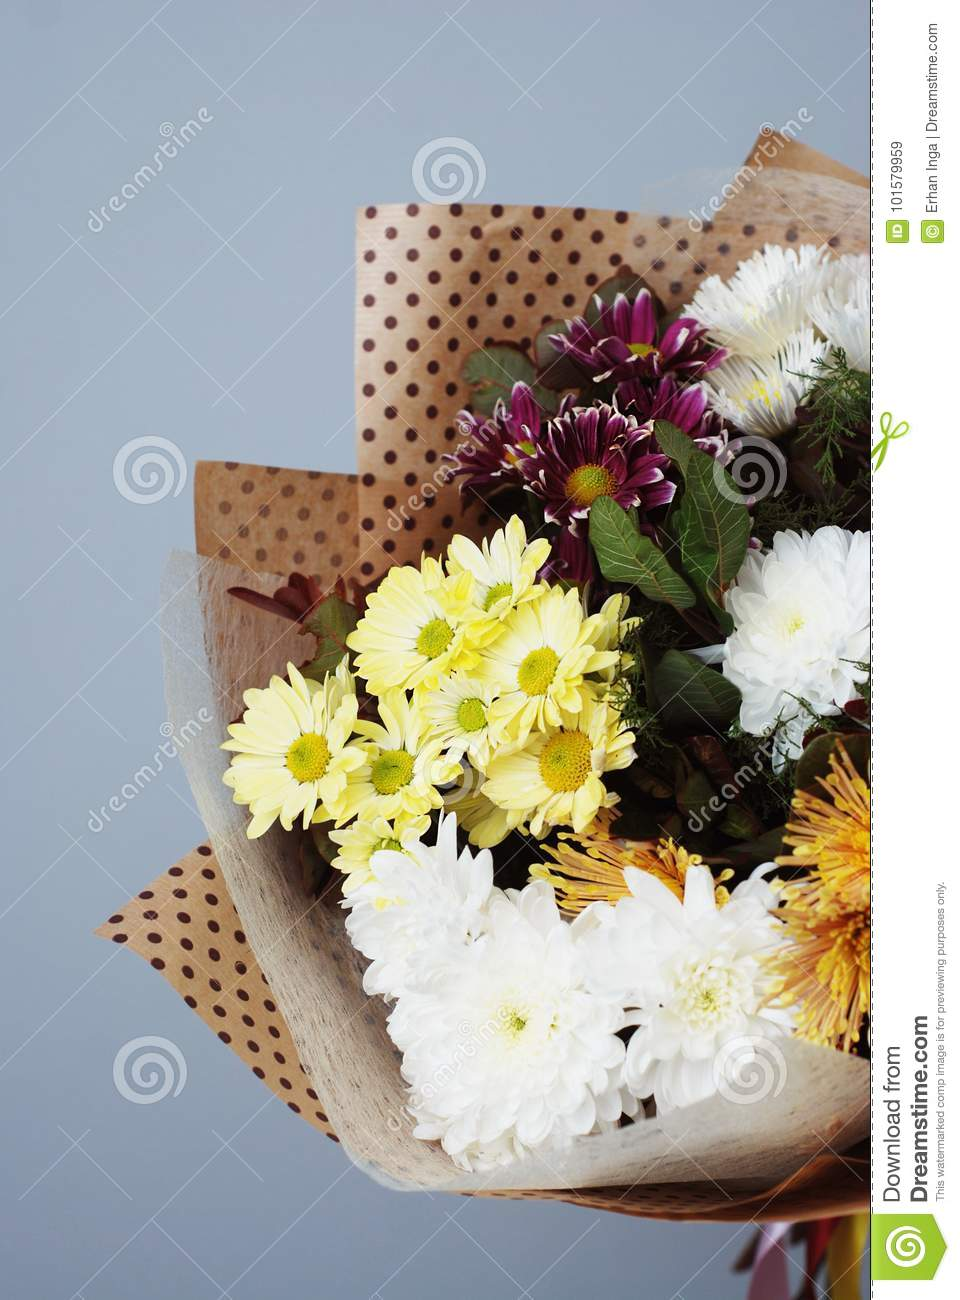 Bouquet in kraft paper a simple bouquet of flowers and greens on download bouquet in kraft paper a simple bouquet of flowers and greens on gray background izmirmasajfo